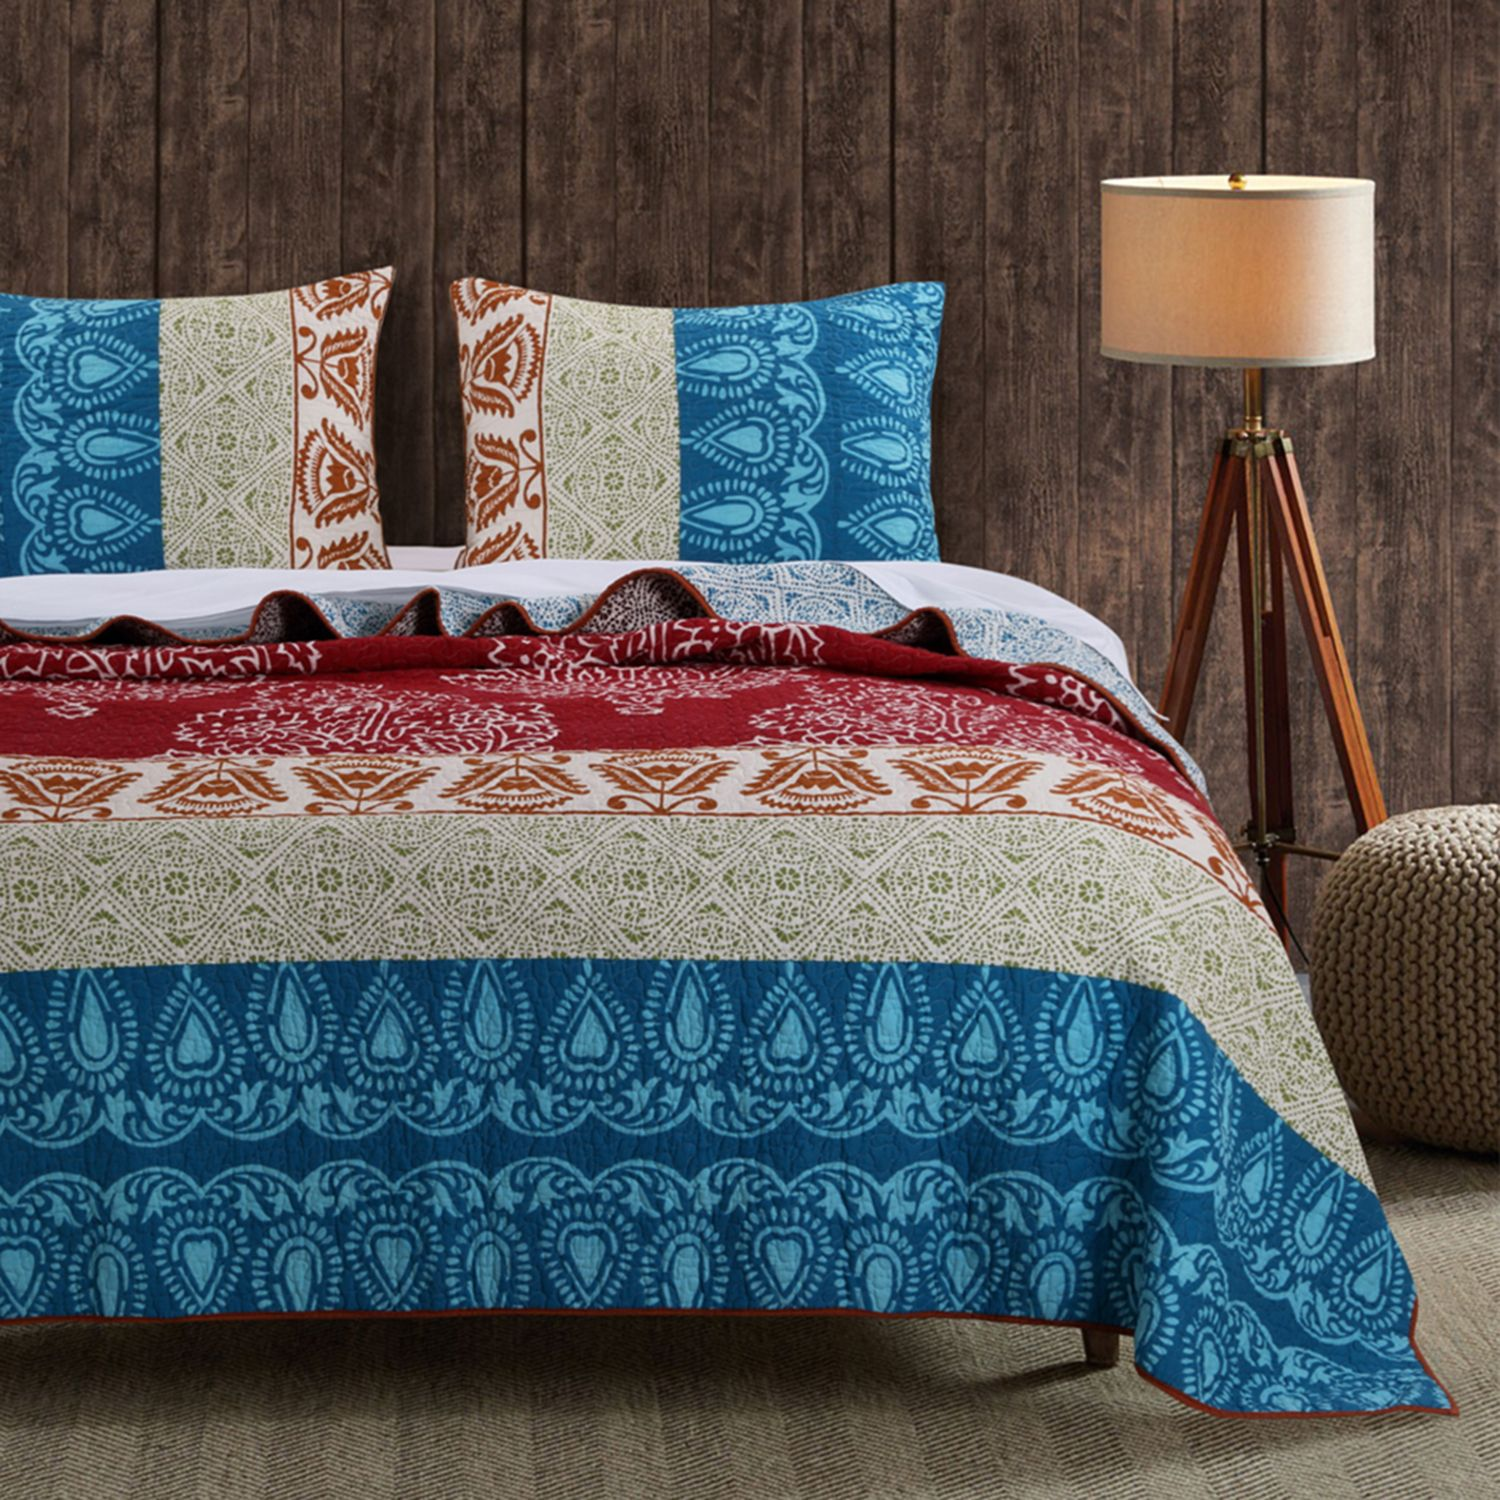 greenland home fashions kianna quilt set - Greenland Home Fashions